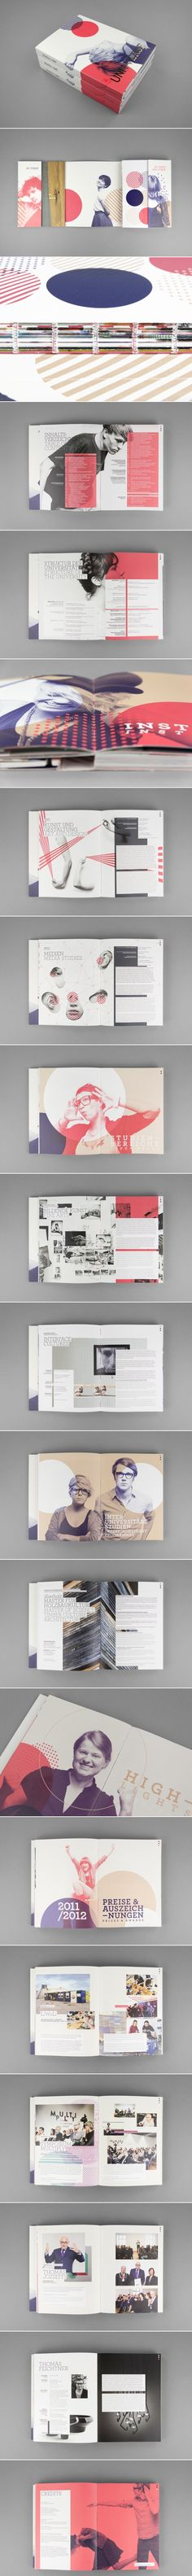 Image-Publication for the Art University of Linz Design: MOOI design Photography: Helga Traxler, Florian Voggeneder